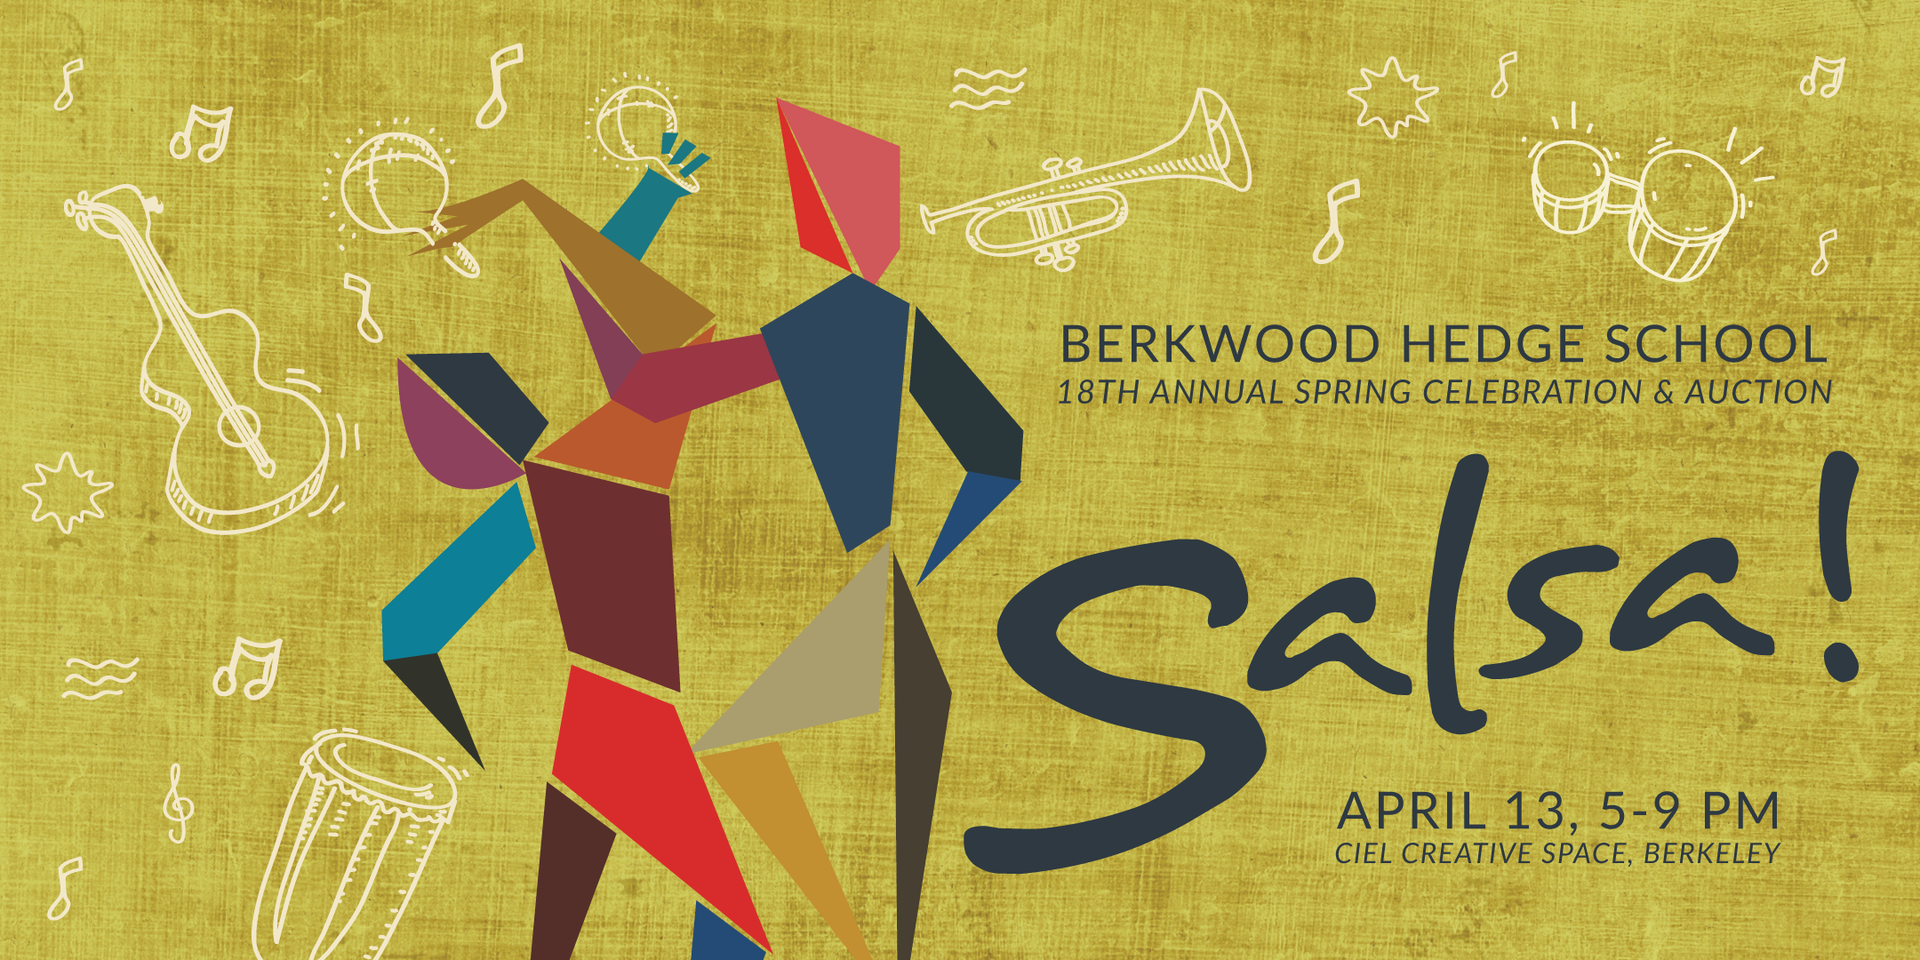 Stylized image of two people dancing against a light green background with white line drawings of instruments and musical notes. The text reads Berkwood Hedge School 18th Annual Spring Celebration and Auction, Salsa, April 13, 5-9pm, Ciel Creative Space, Berkeley